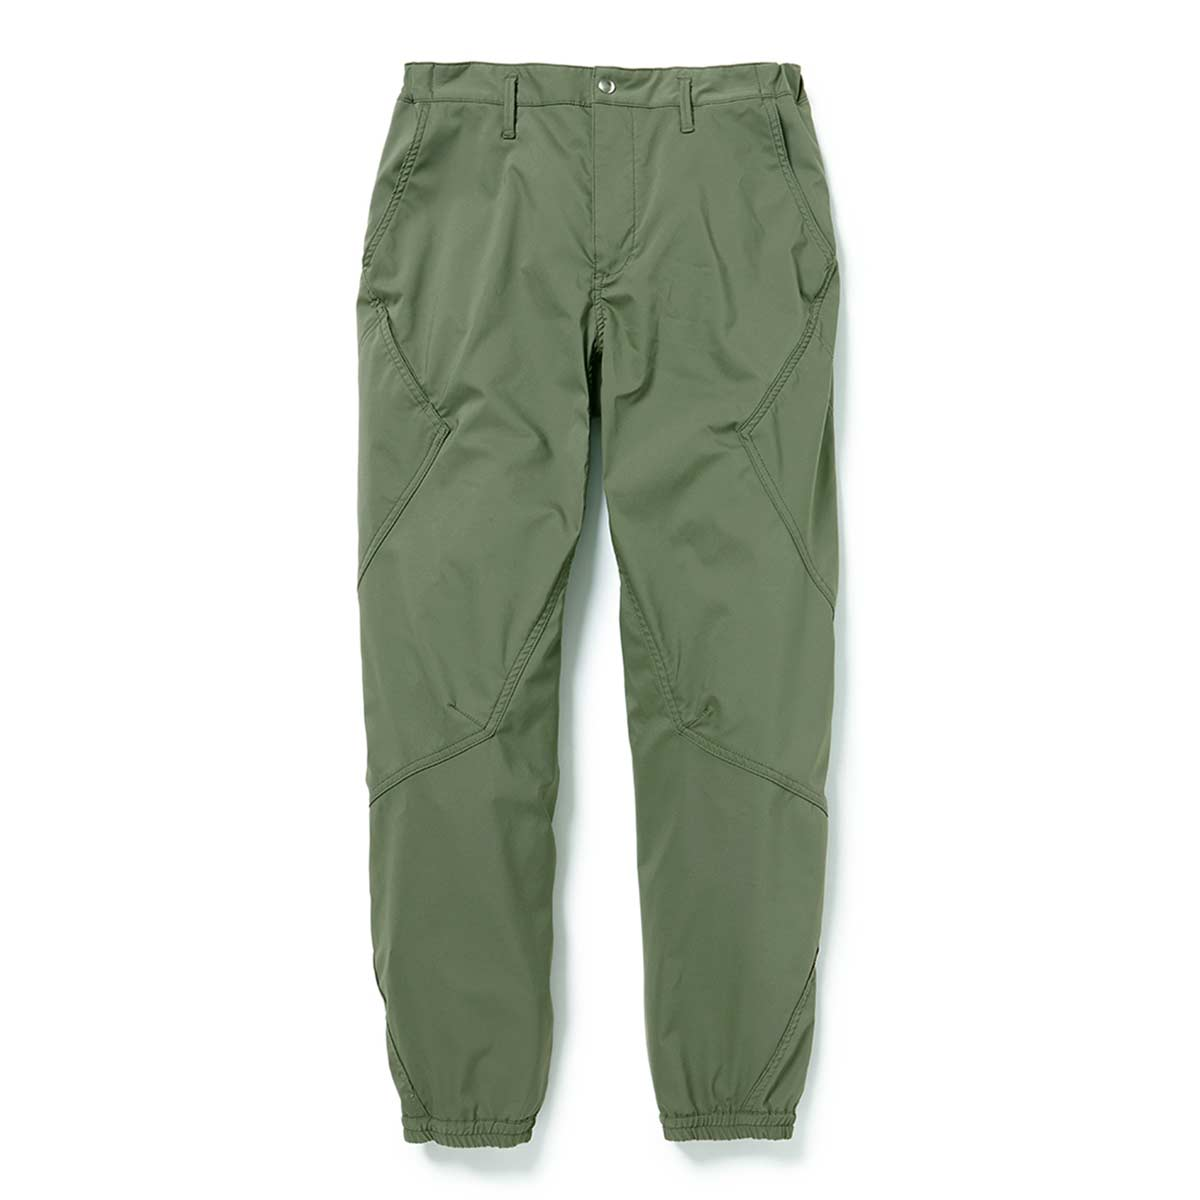 nonnative / CYCLIST EASY RIB PANTS TAPERED FIT POLY TWILL Pliantex -OLIVE